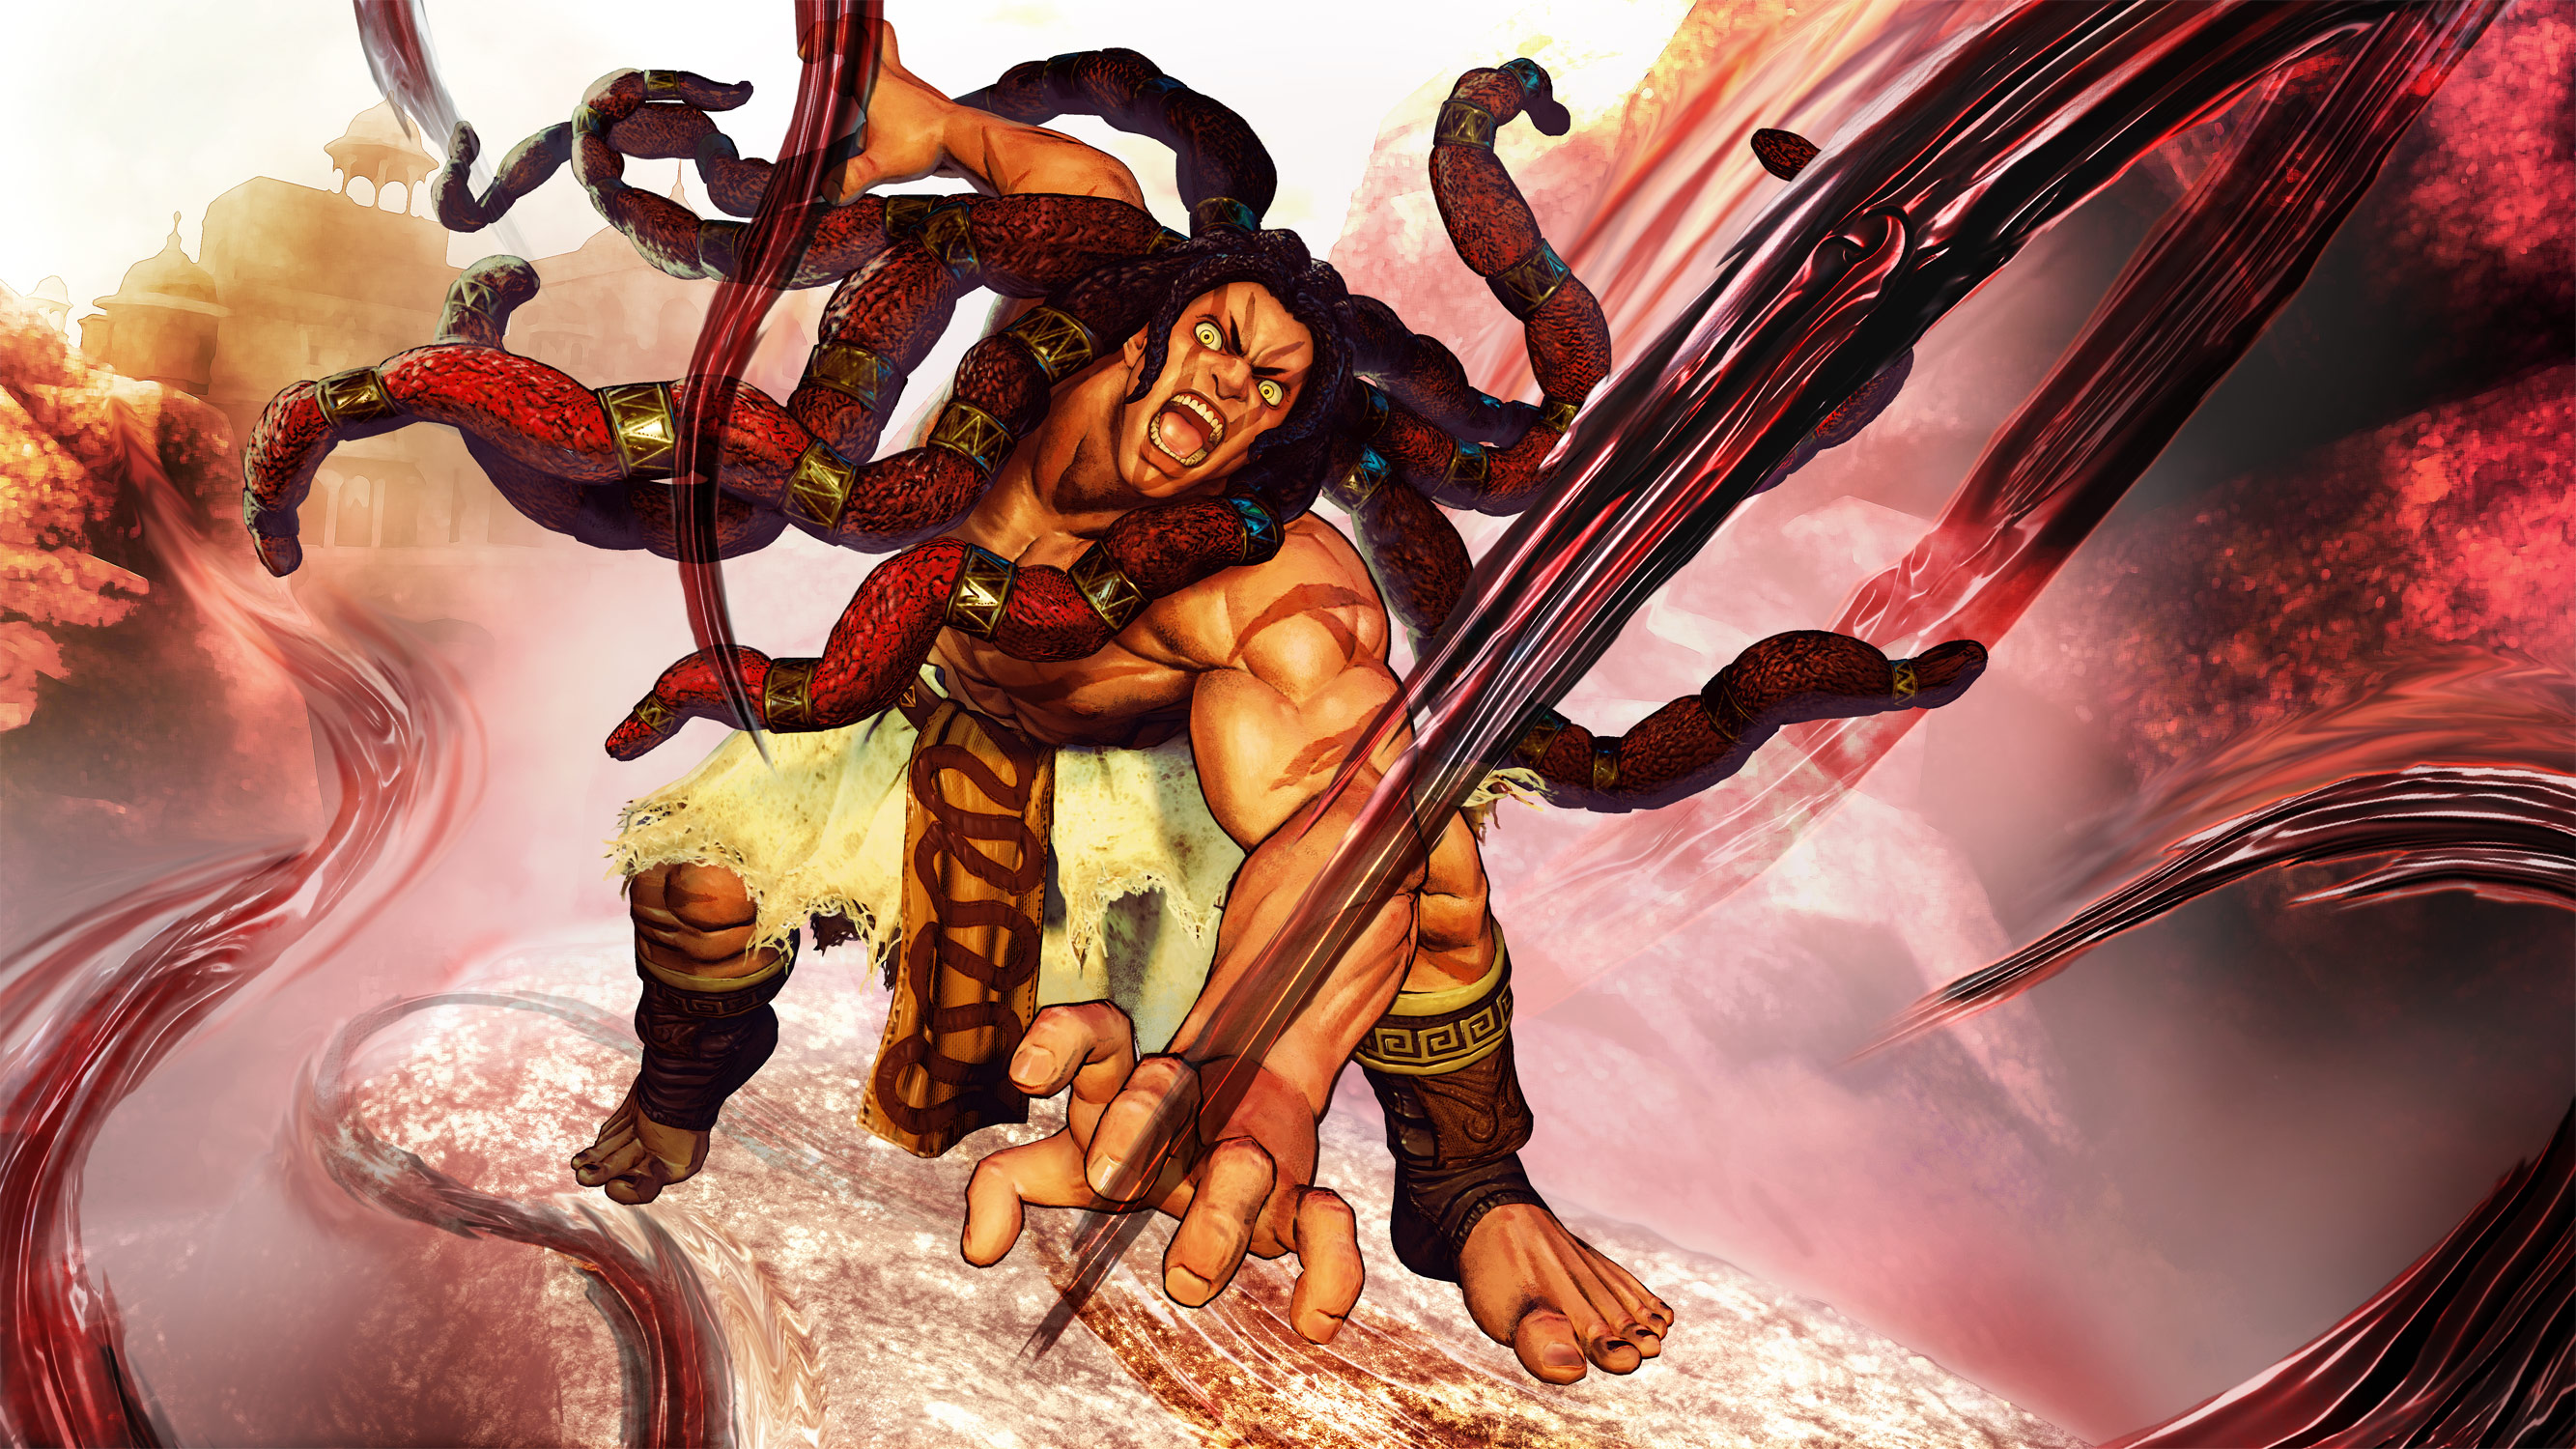 Official screenshots of Necalli in SF5 5 out of 17 image gallery